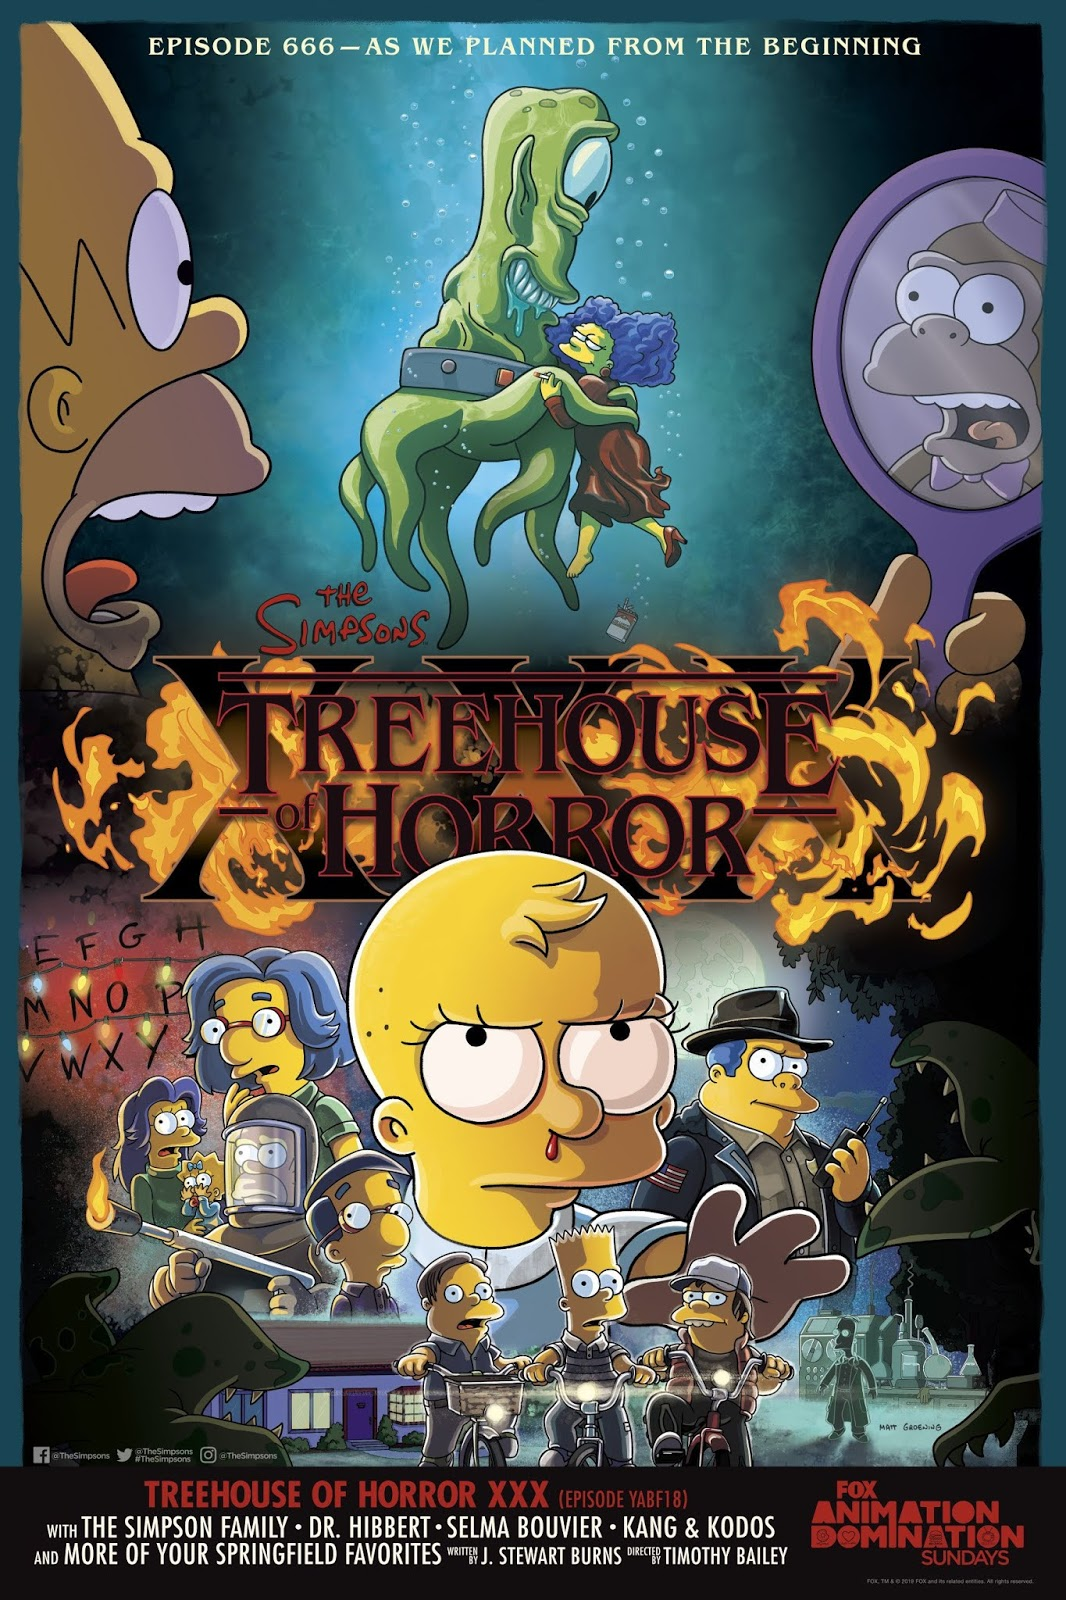 Das neuste Halloween Special der Simpsons | Treehouse of Horror